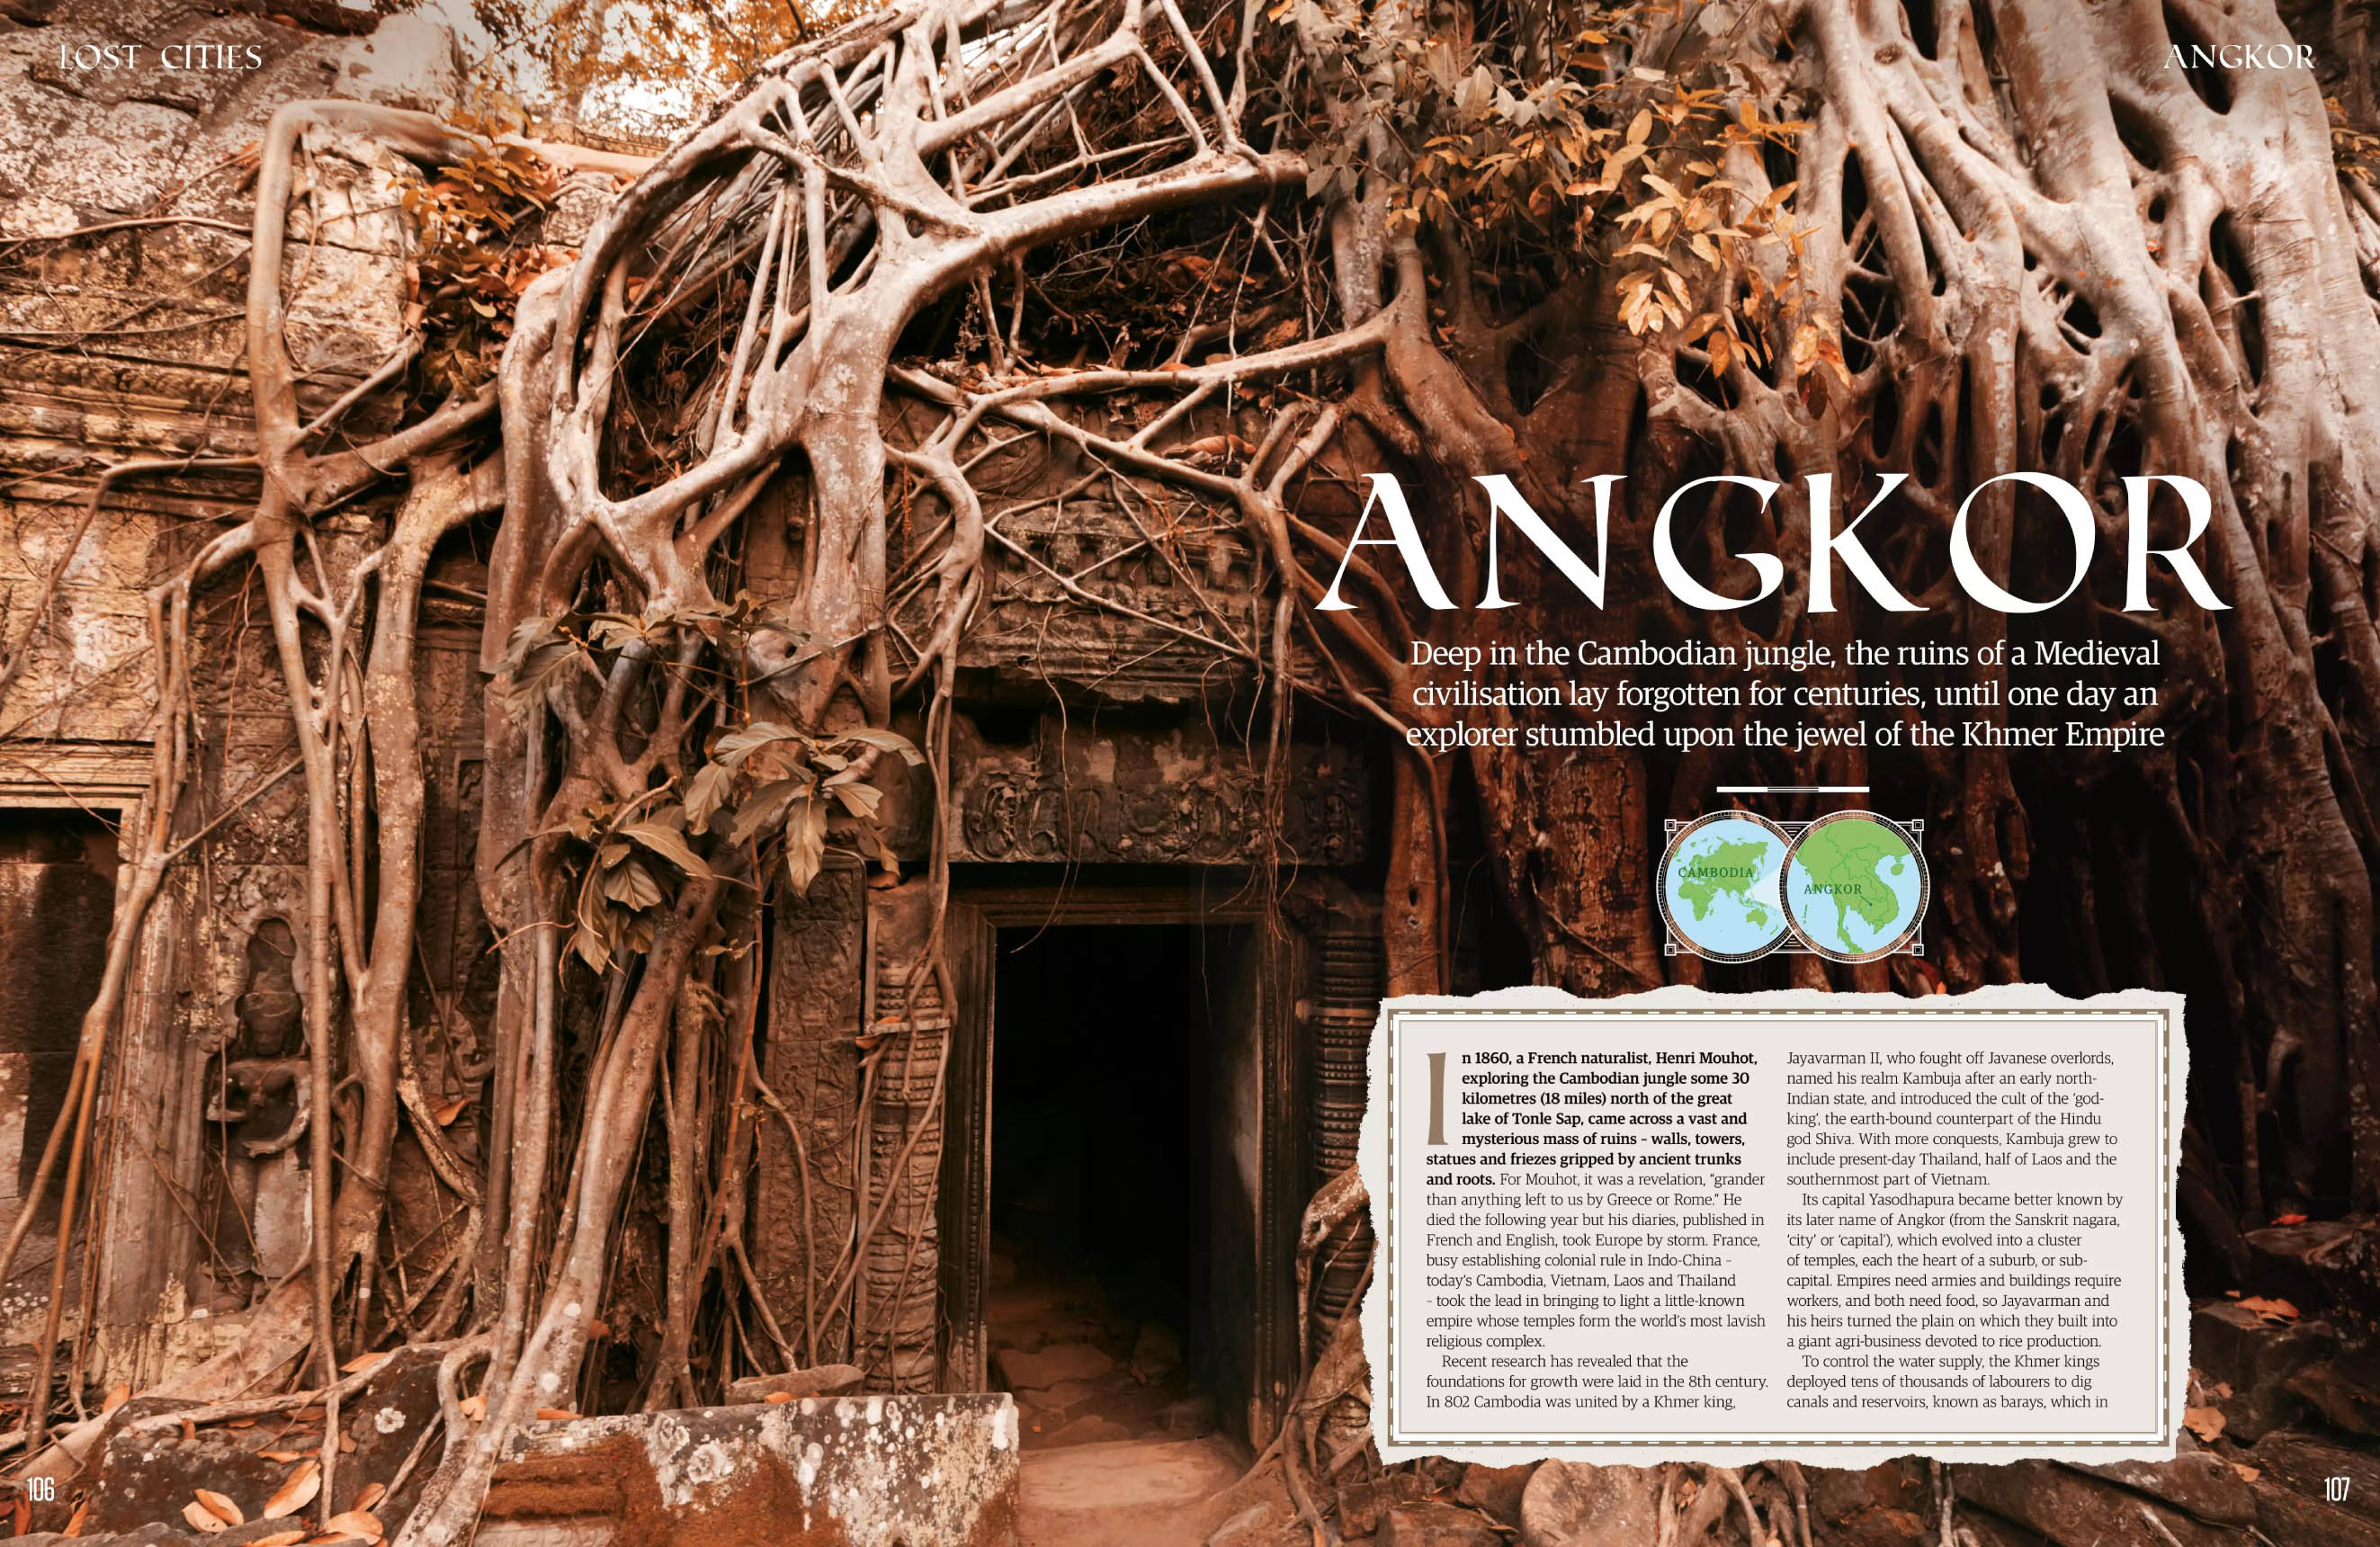 All About History - Lost Cities 3rd Ed 2020 Angkor 01.jpg